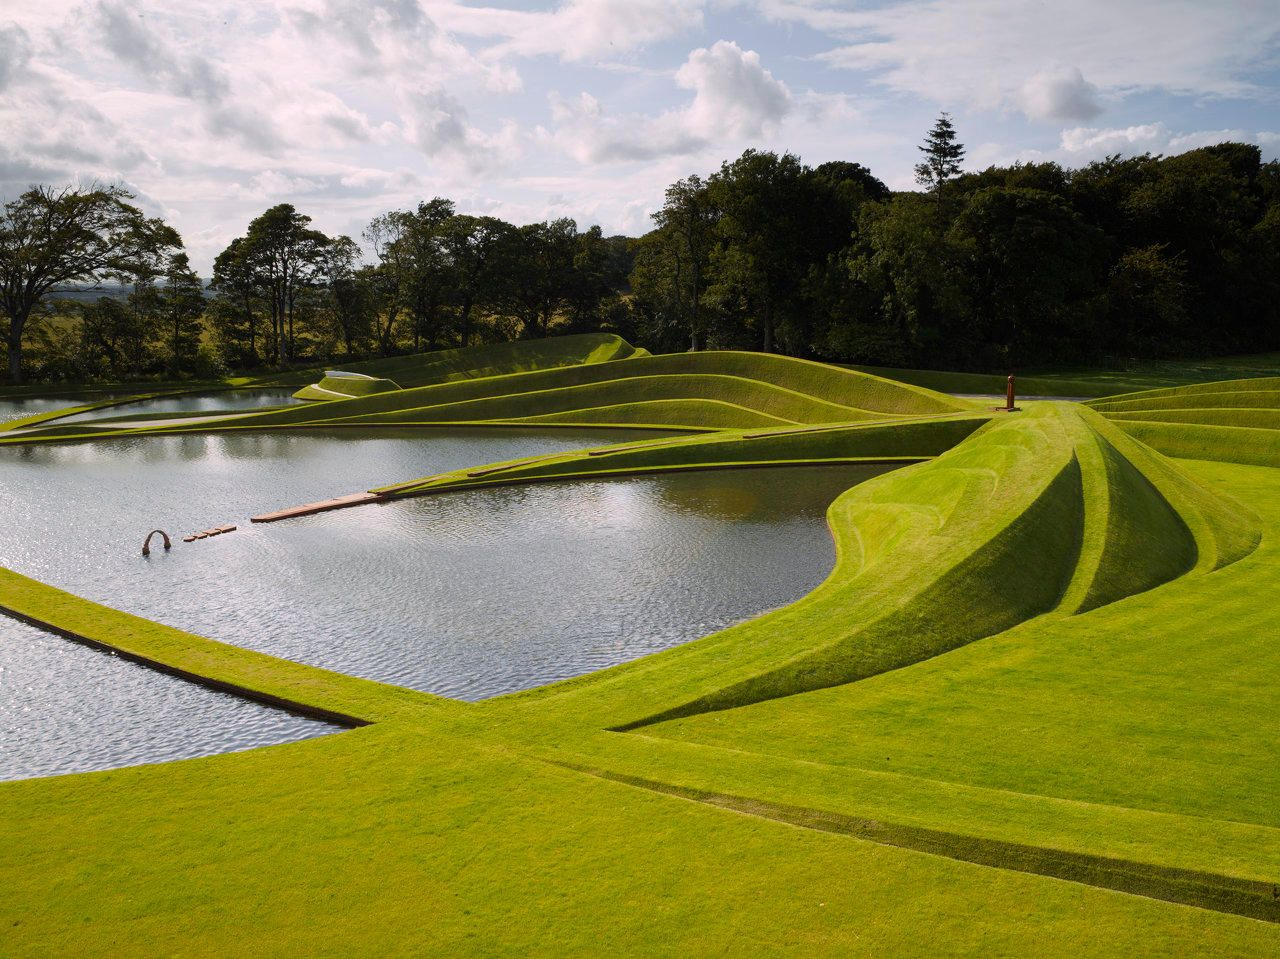 Charles Jencks Landform Ueda Gallery of Modern Art Edinburgh